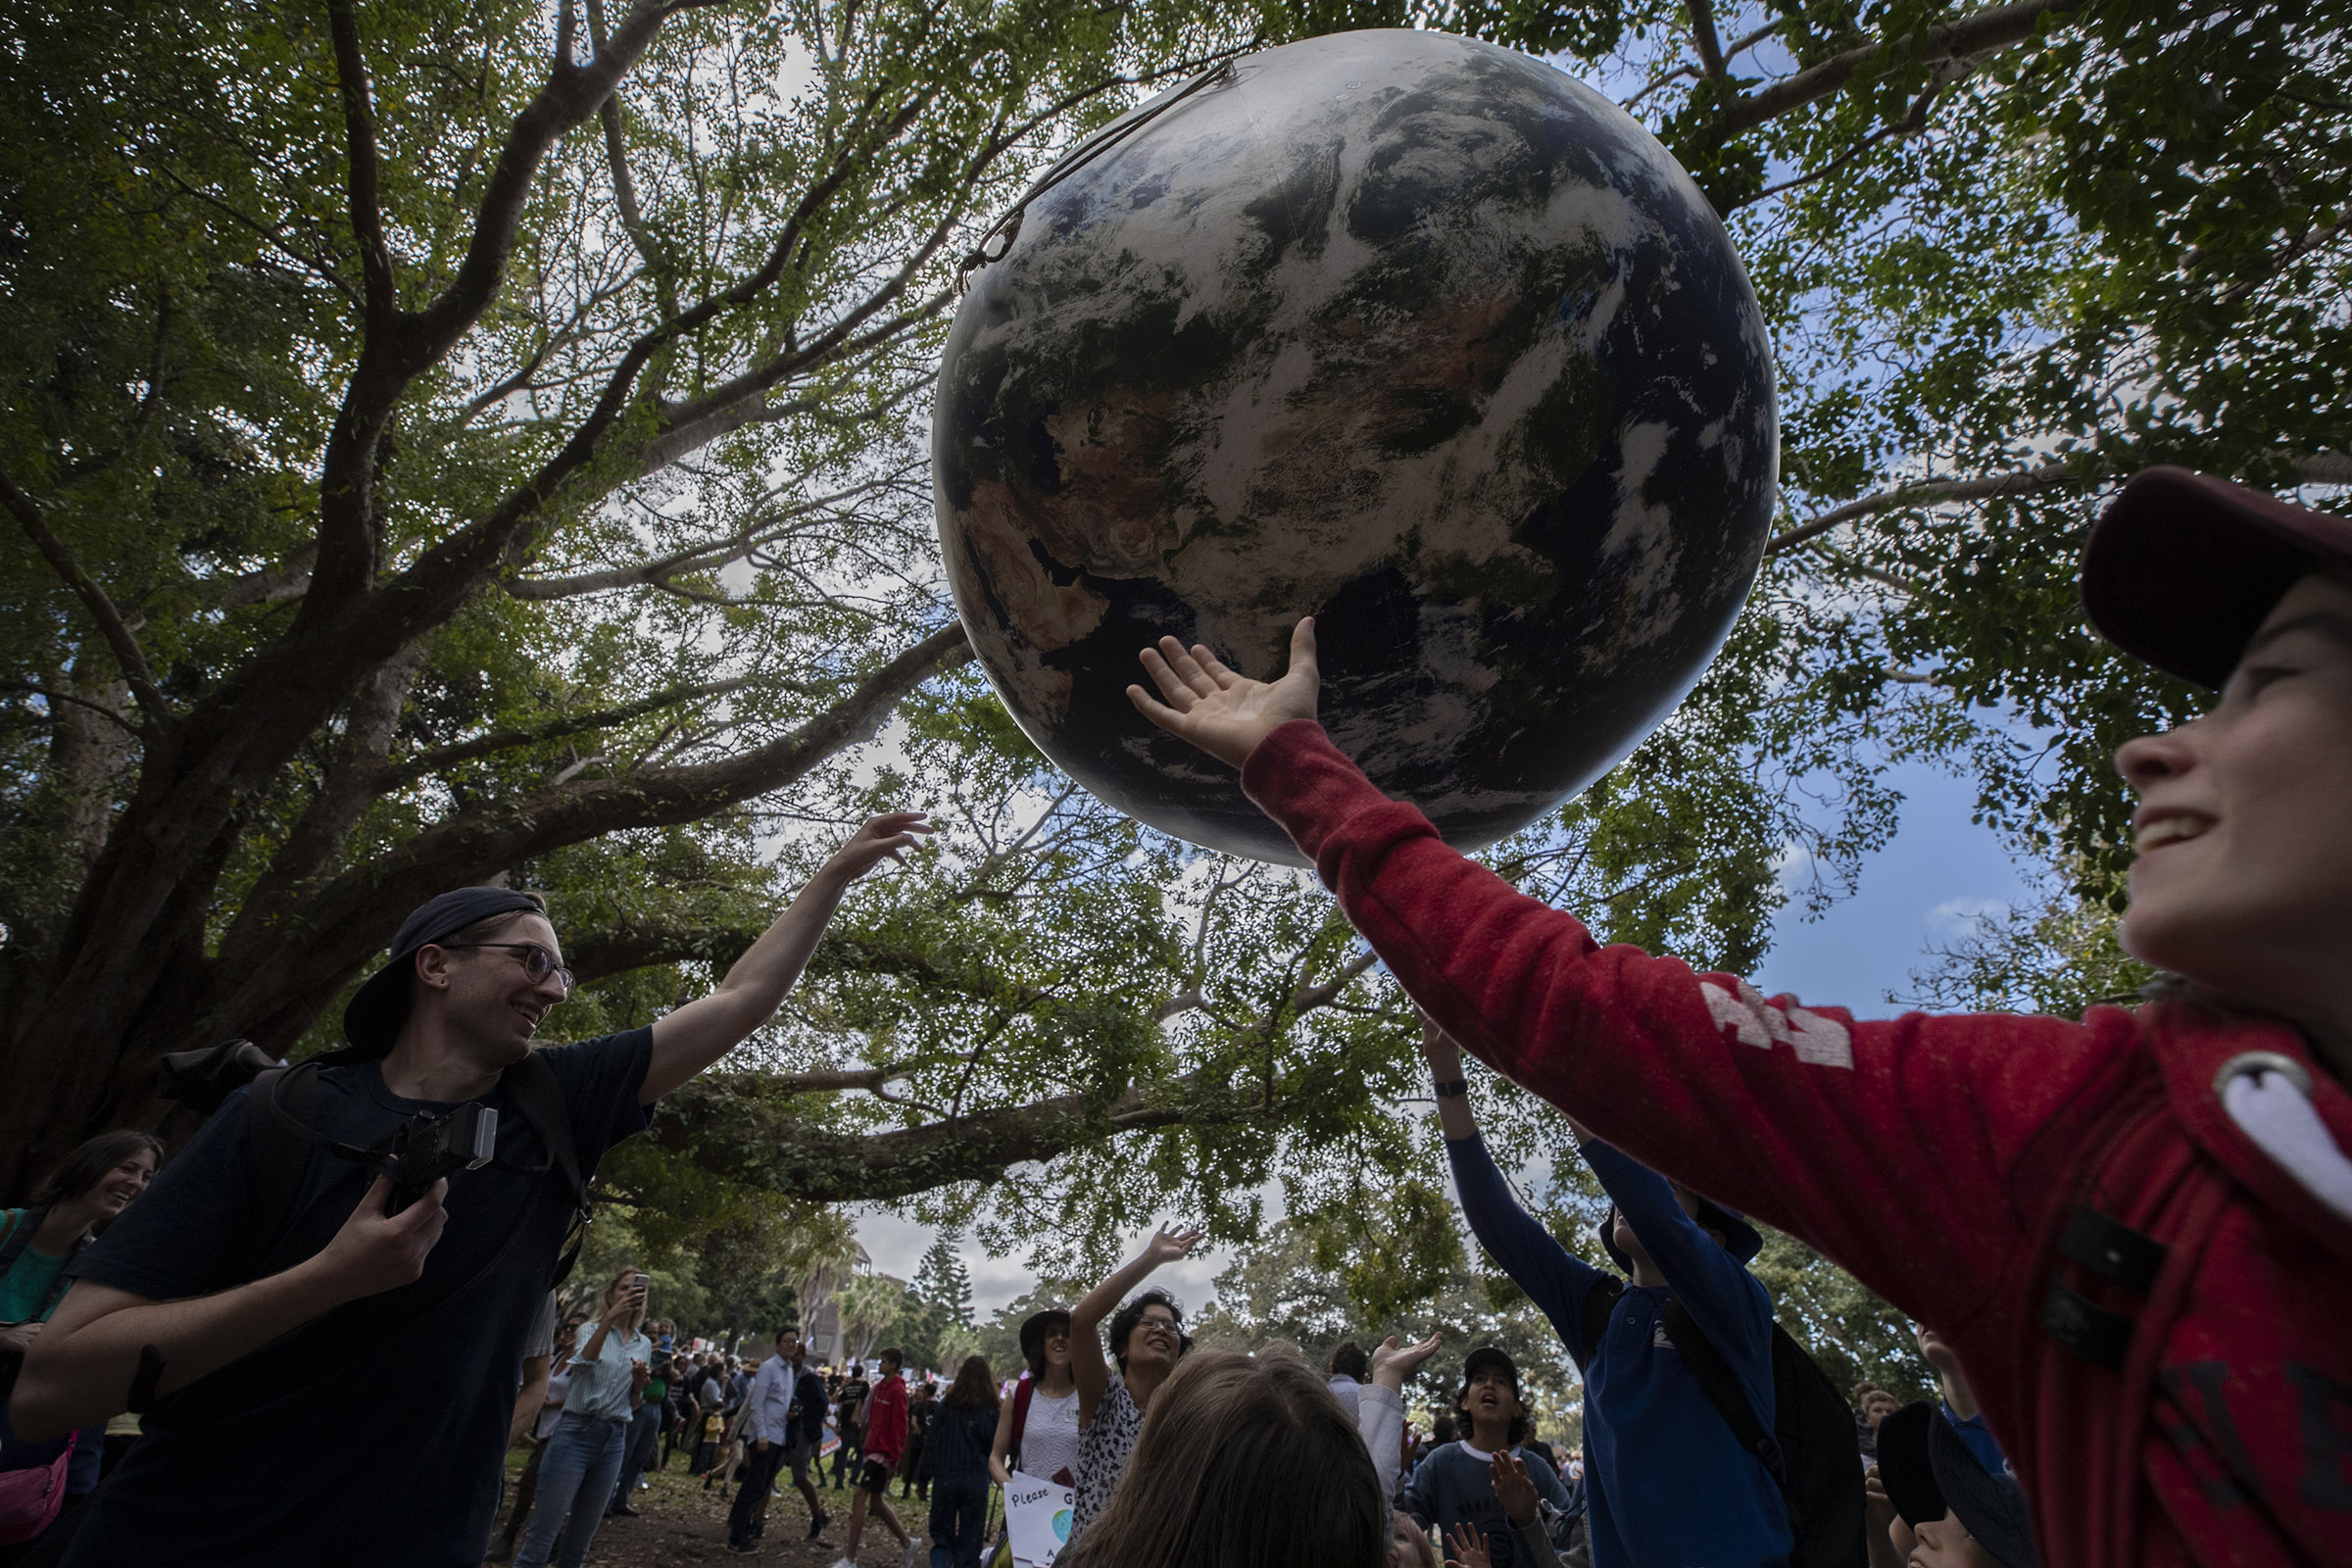 Young protestors play with a large globe on September 20, 2019 in Sydney, Australia. Rallies held across Australia are part of a global mass day of action demanding action on the climate crisis. (